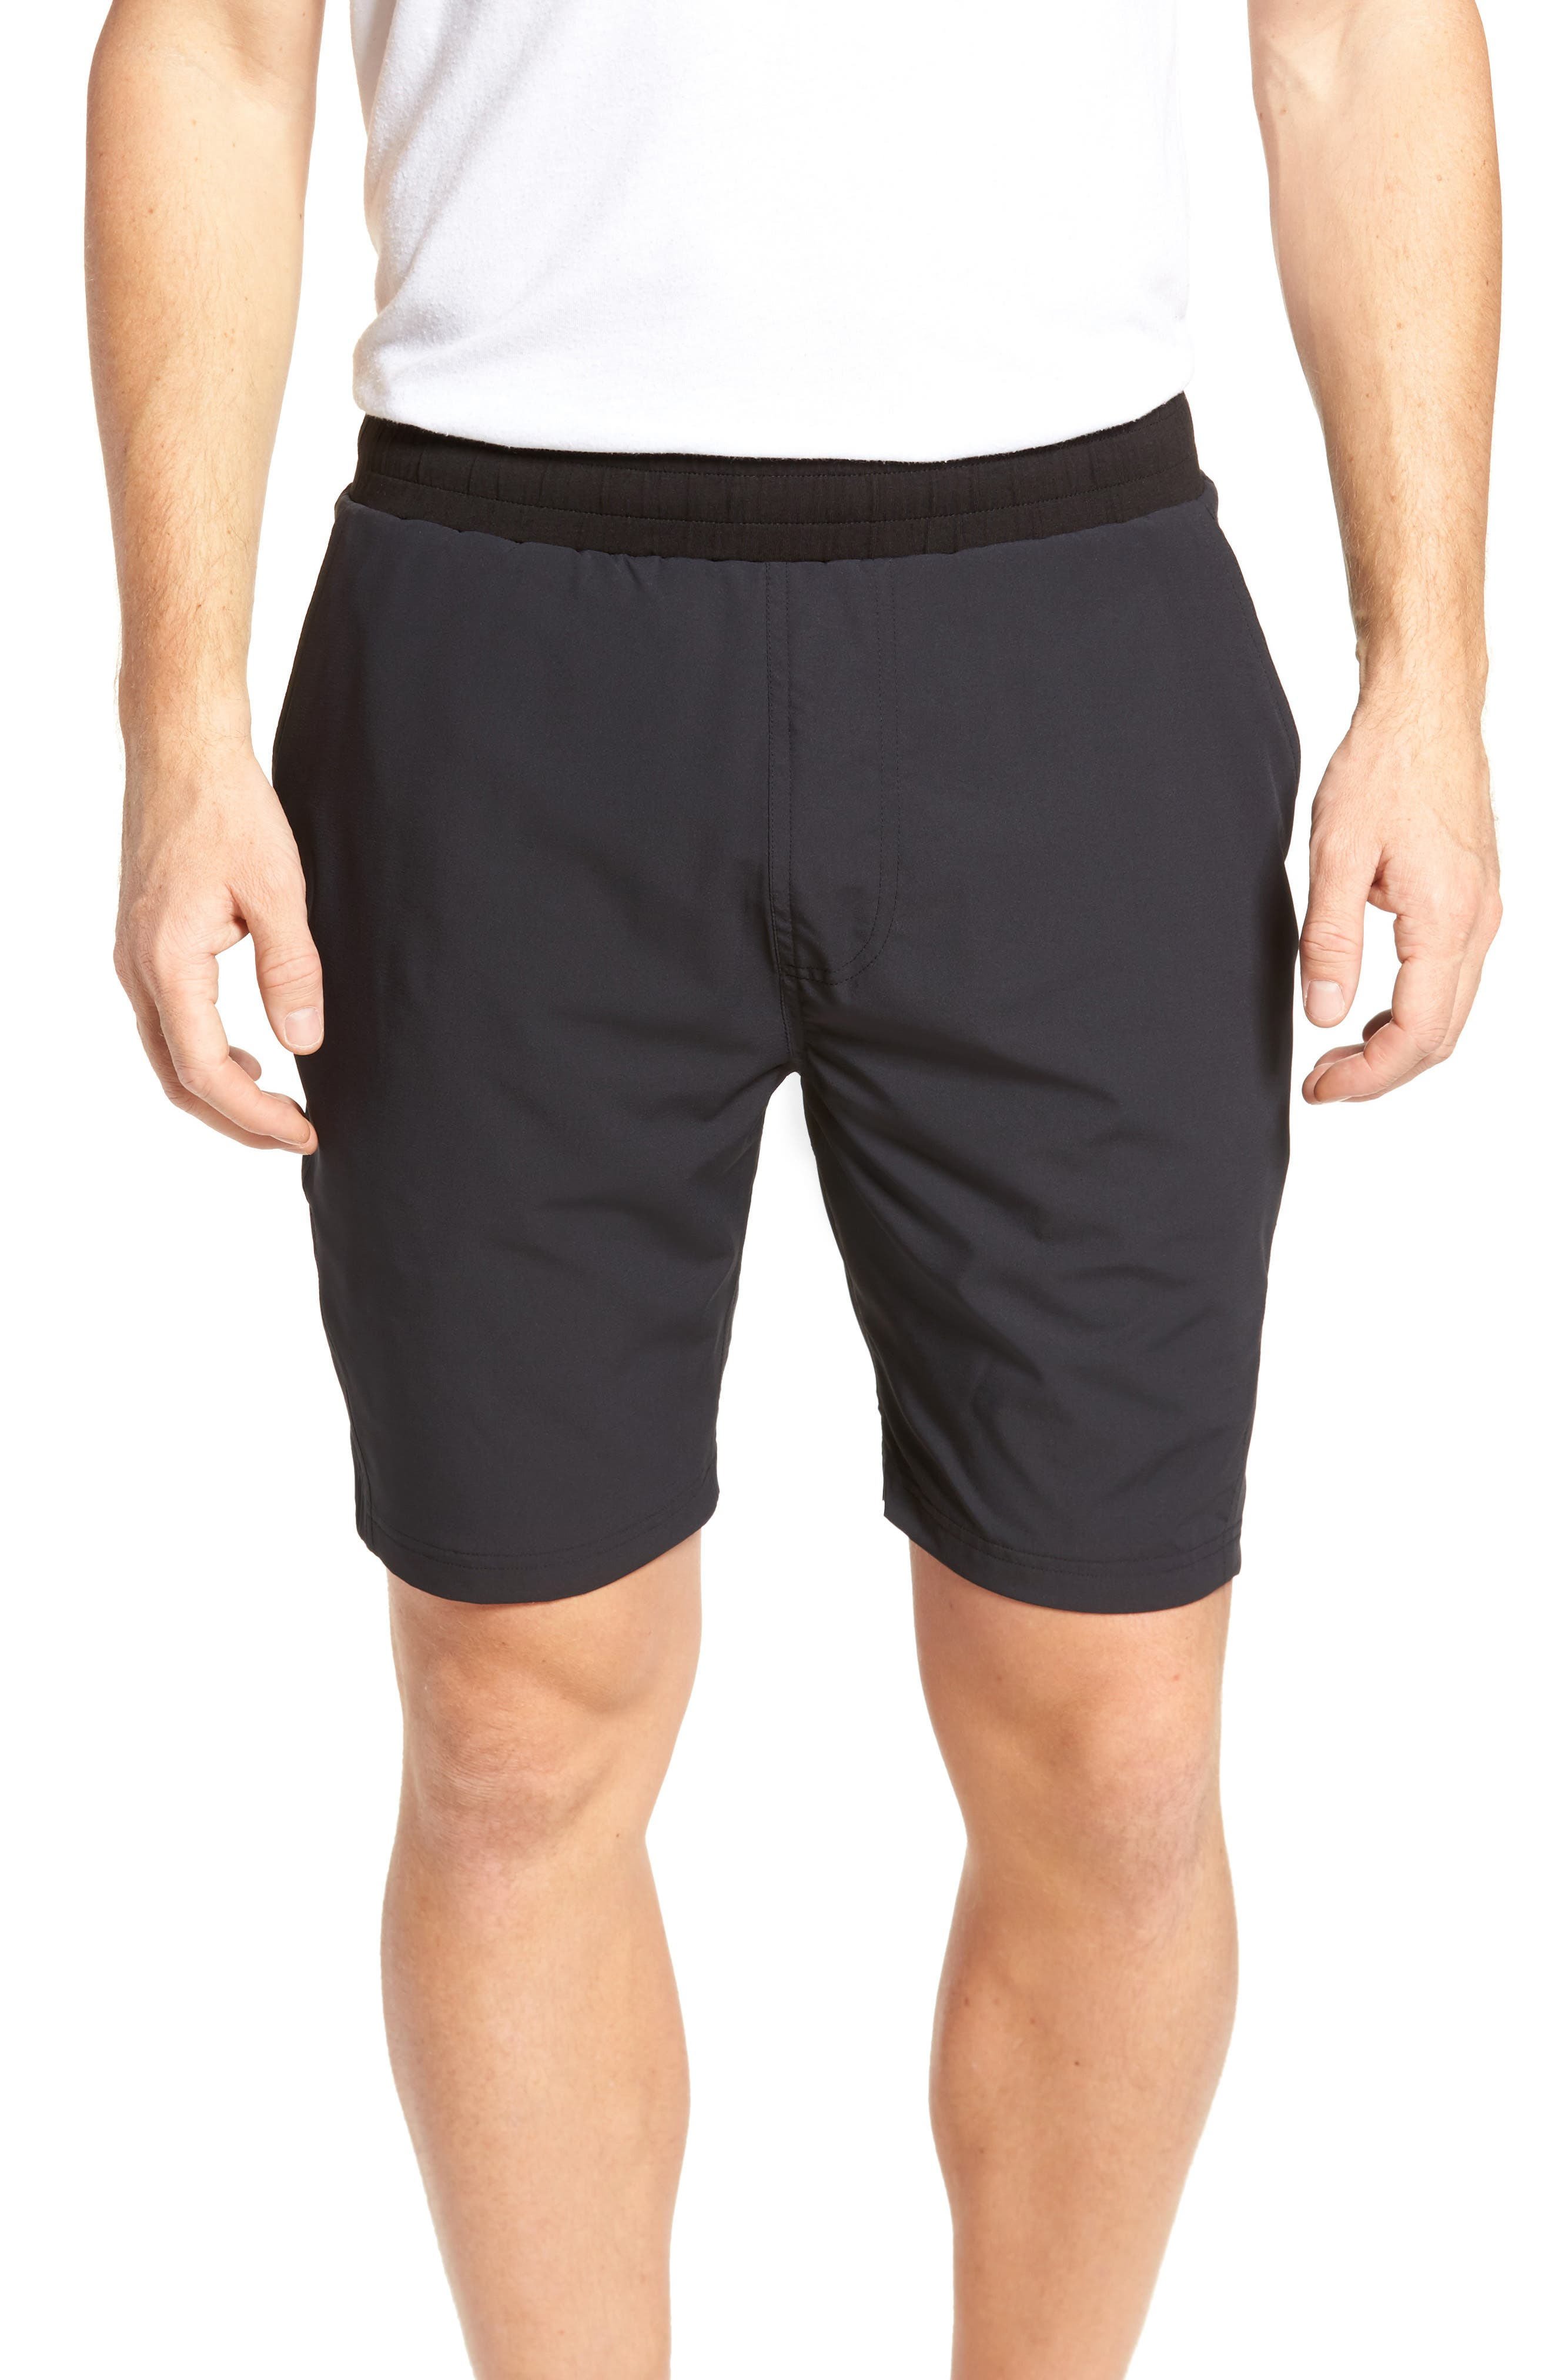 Charge Water Resistant Athletic Shorts,                             Main thumbnail 1, color,                             BLACK